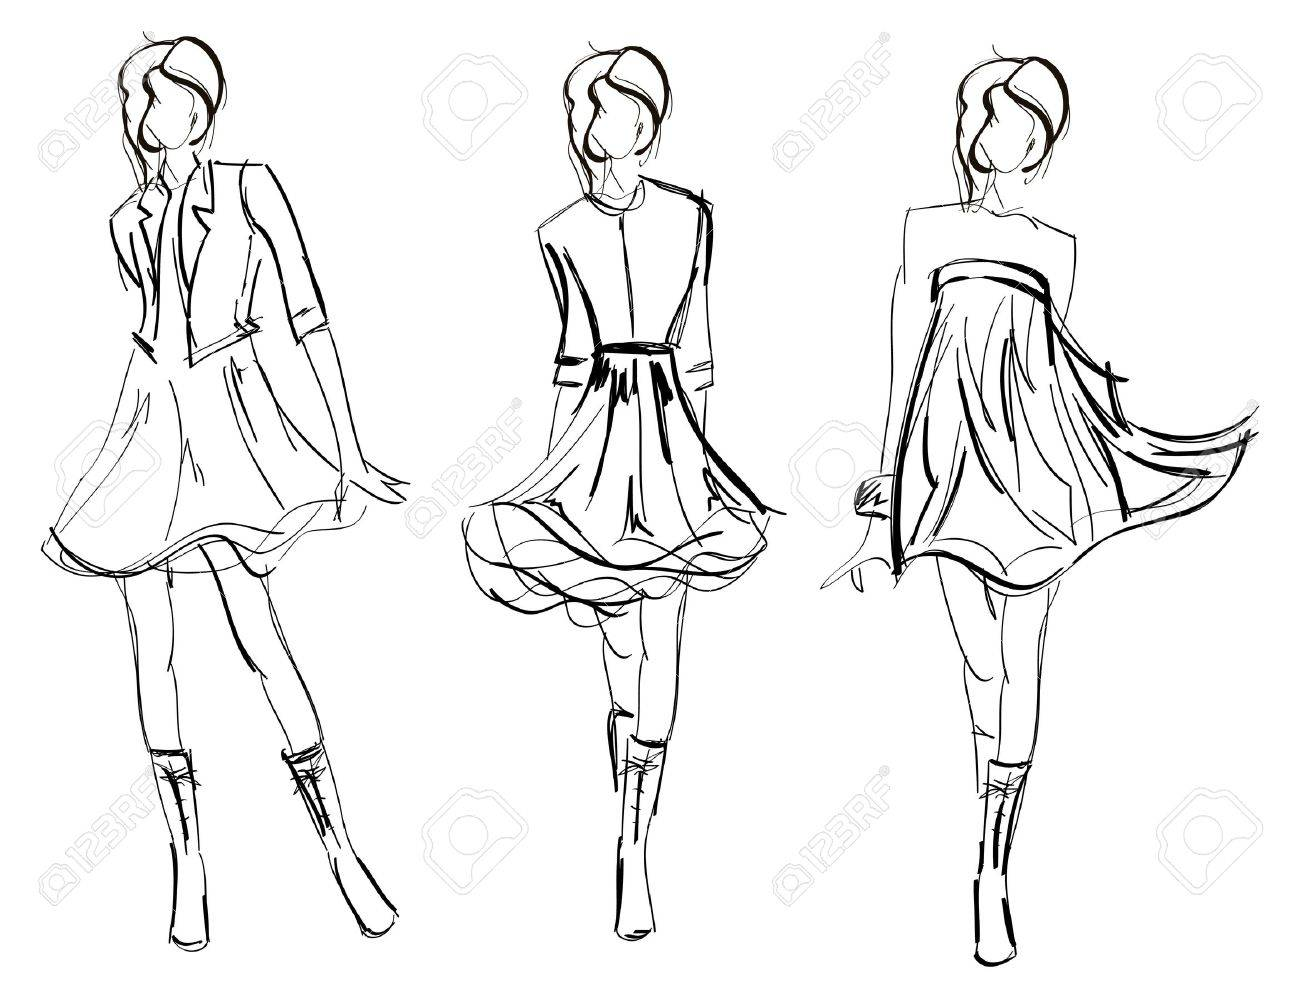 Fashion Templates 33 Free Designs Inspiration Jpg Format